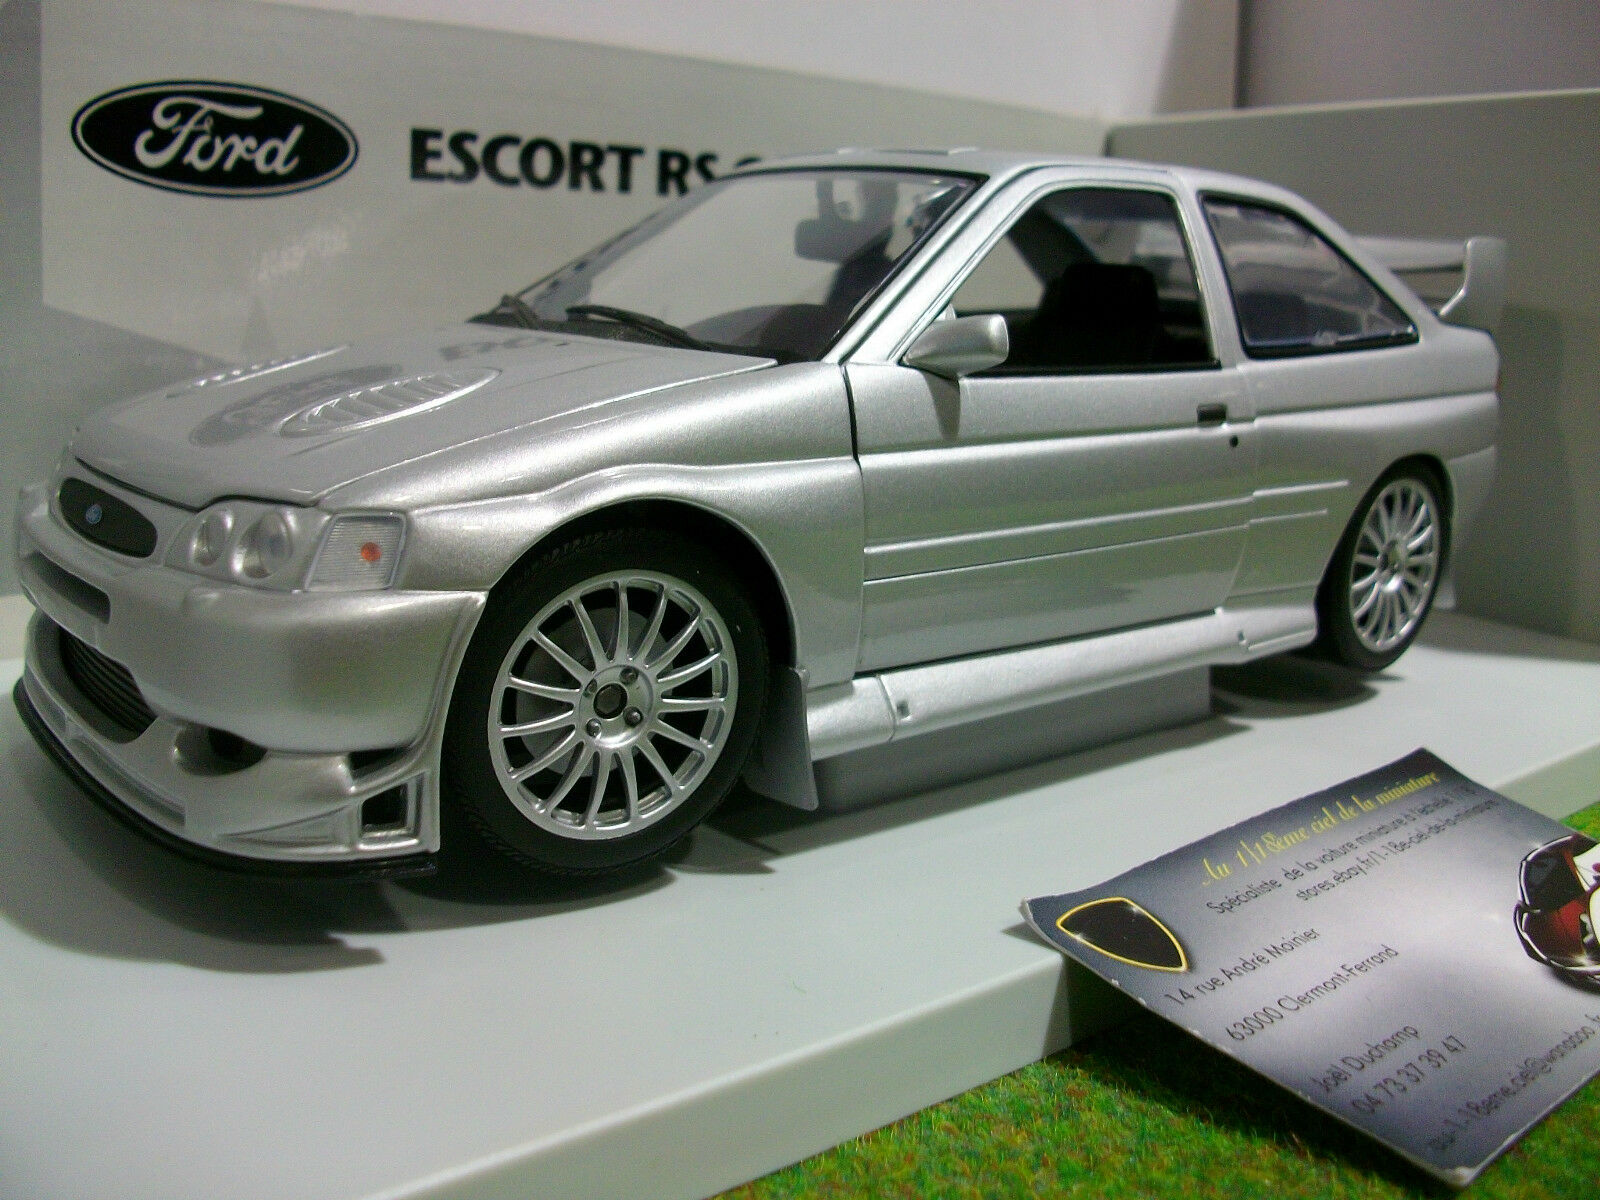 FORD ESCORT RS COSWORTH WRC 1 18  UT MODELS 22706 voiture miniature d collection